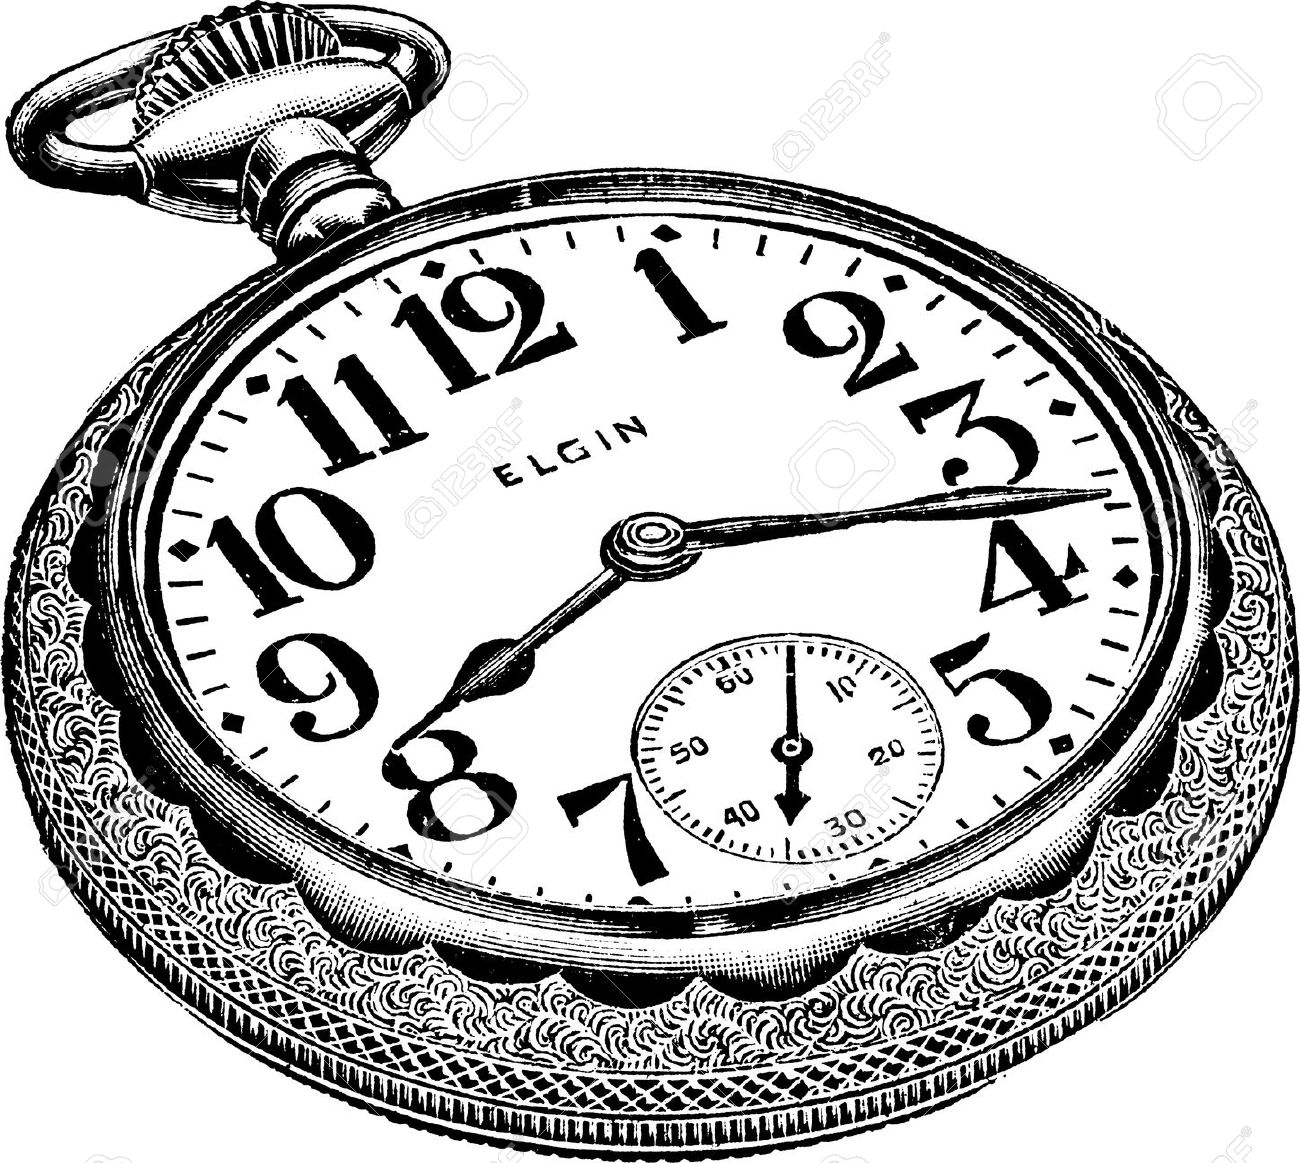 An Antique Engraved Illustration Of A Pocket Watch Isolated On.